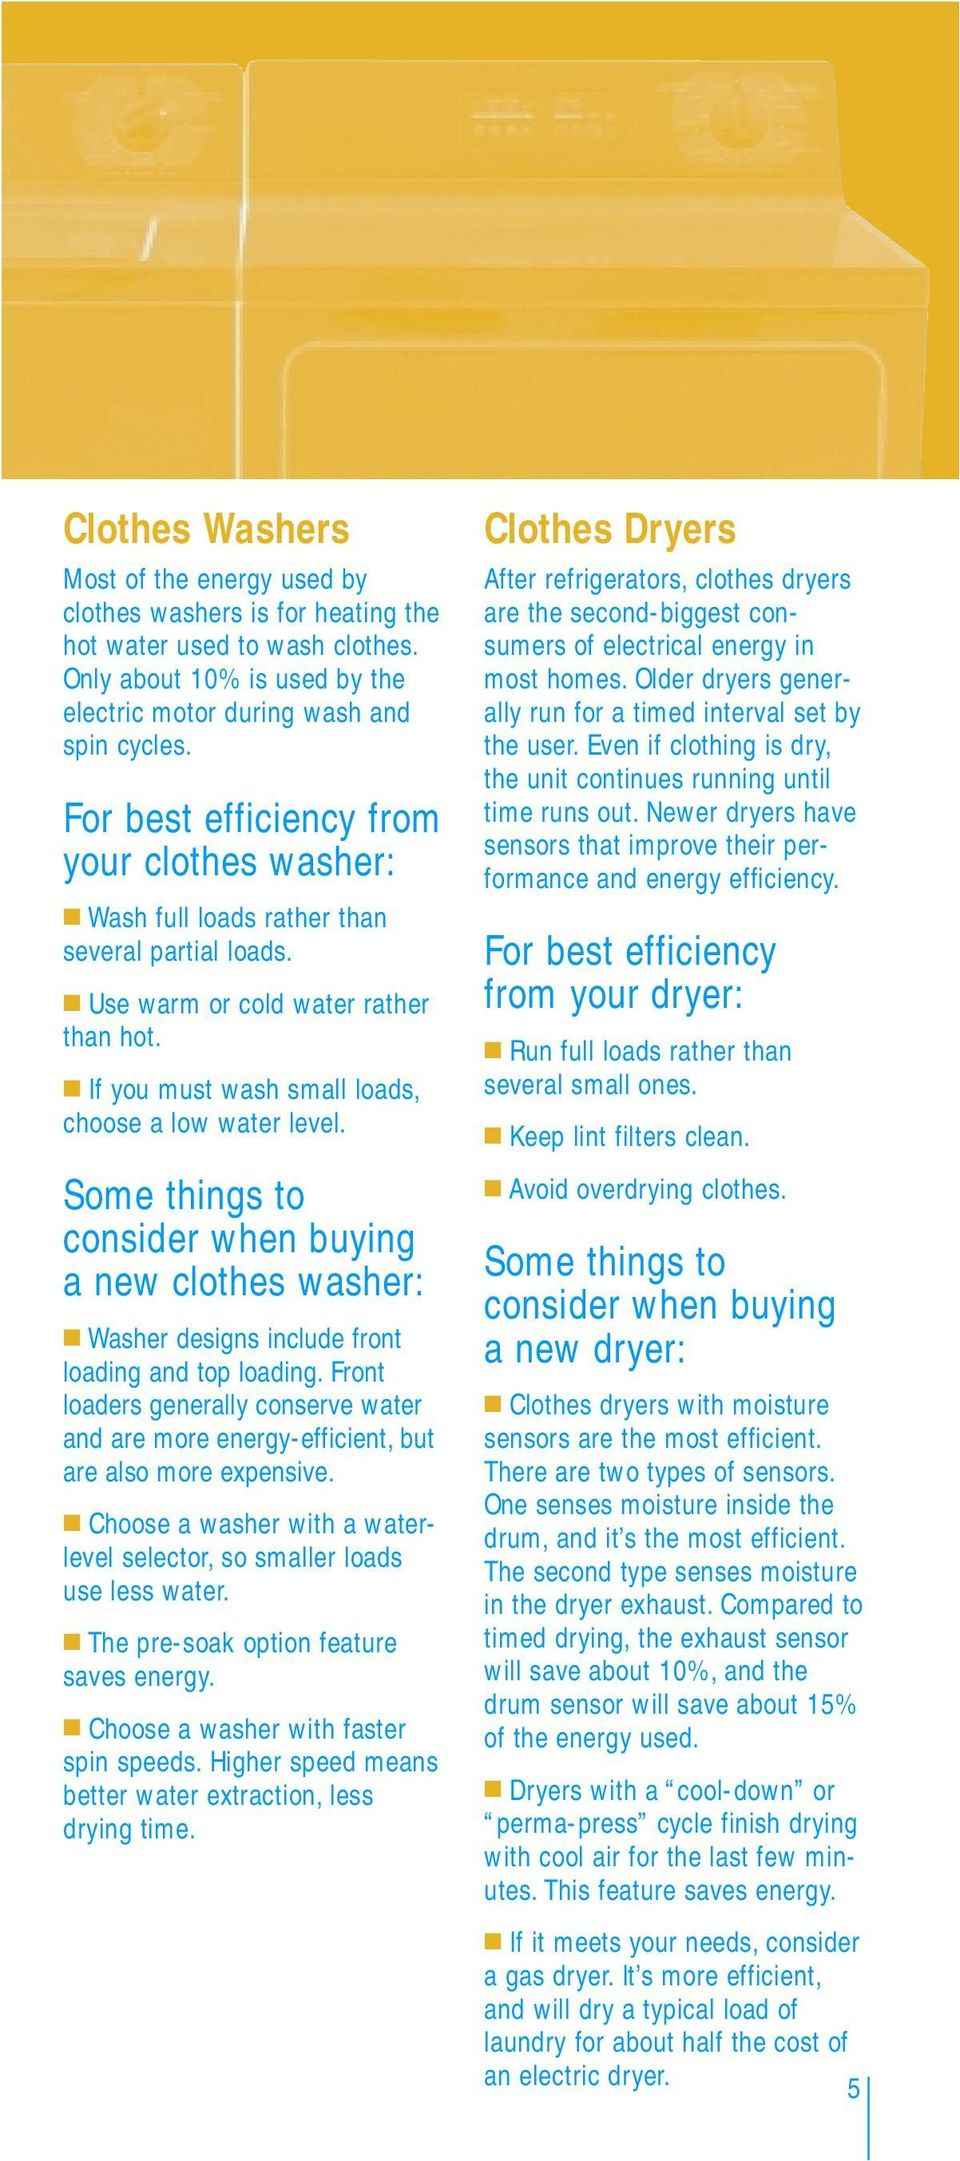 Some things to consider when buying a new clothes washer: Washer designs include front loading and top loading.